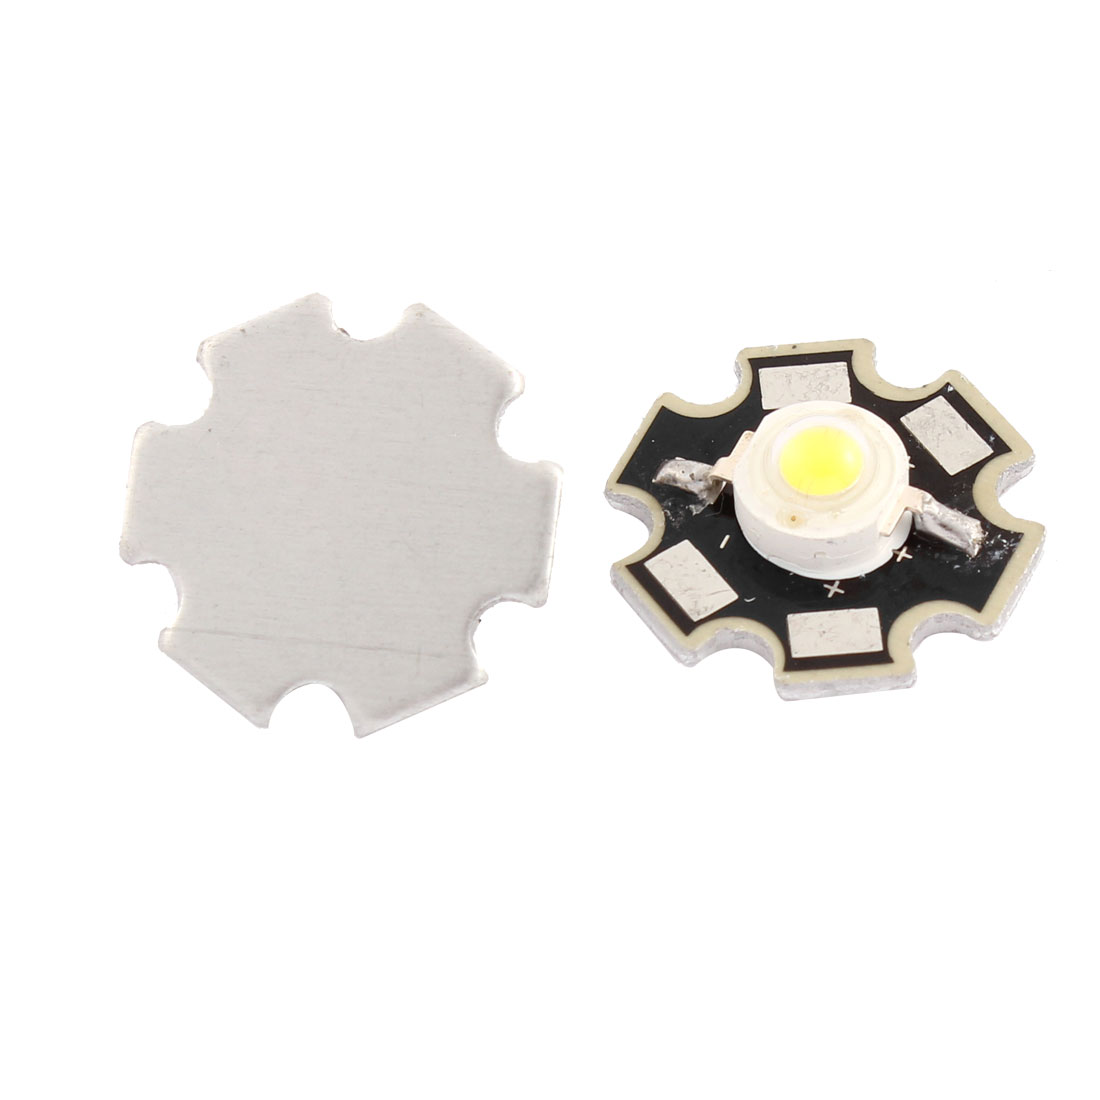 High Power 3W 190-210LM 20mm Star PCB Base White LED Bead Emitters 2pcs